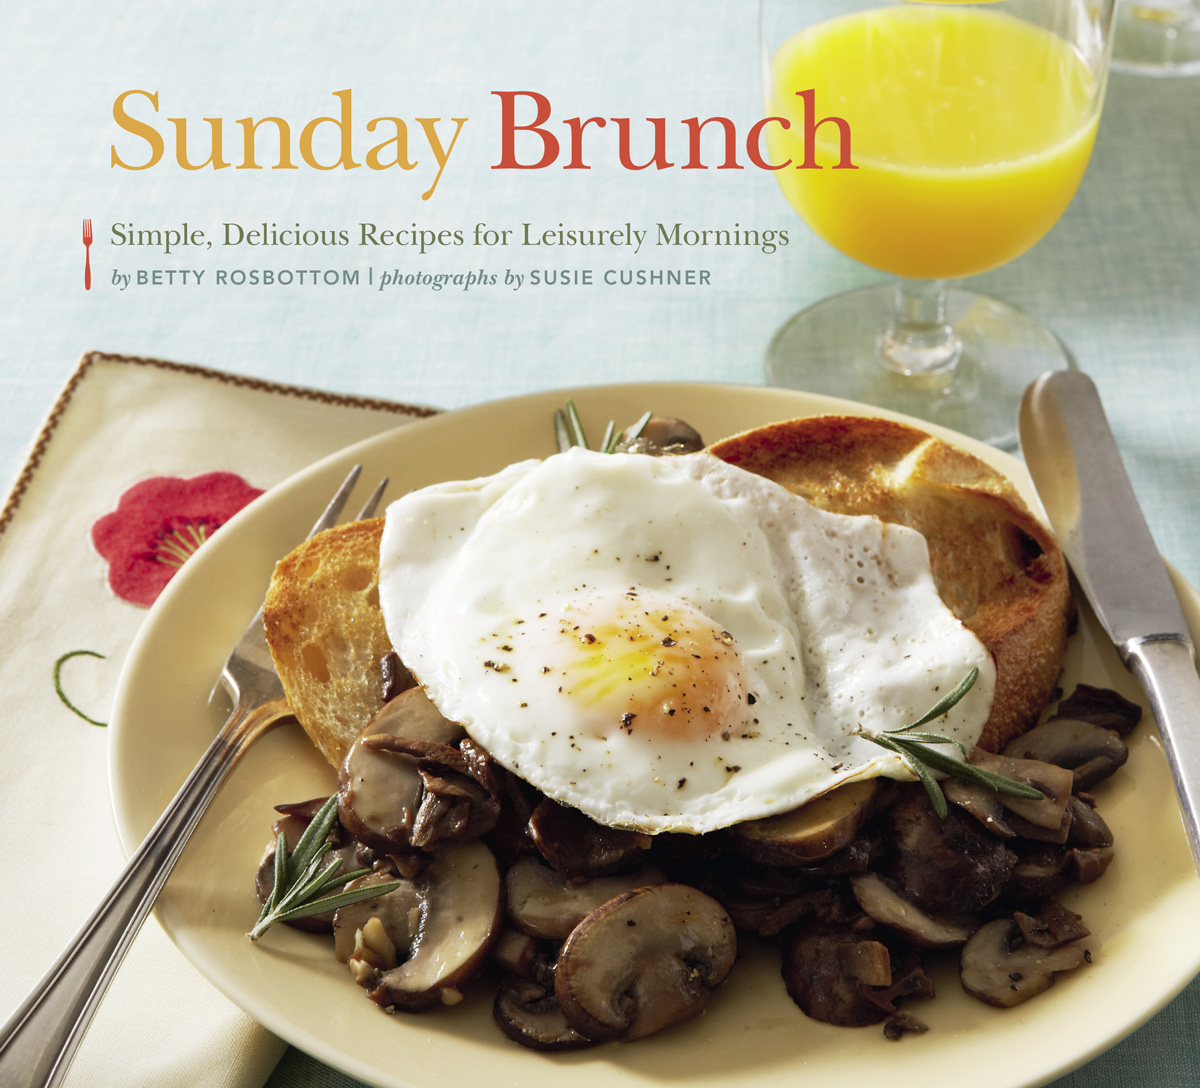 Sunday Brunch By: Betty Rosbottom , Susie Cushner